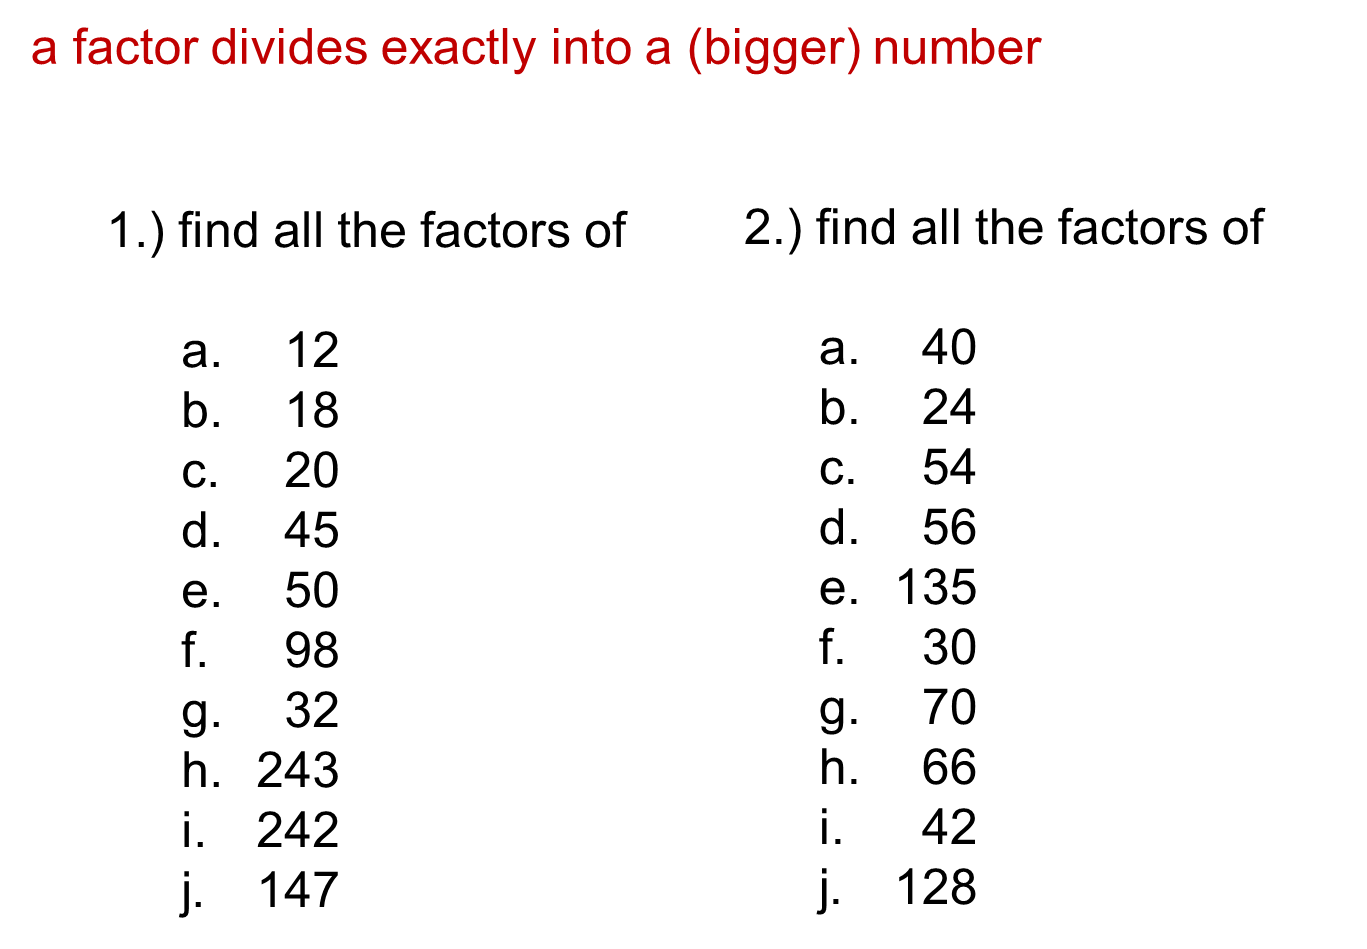 Median Don Steward Secondary Maths Teaching Number Of Factors